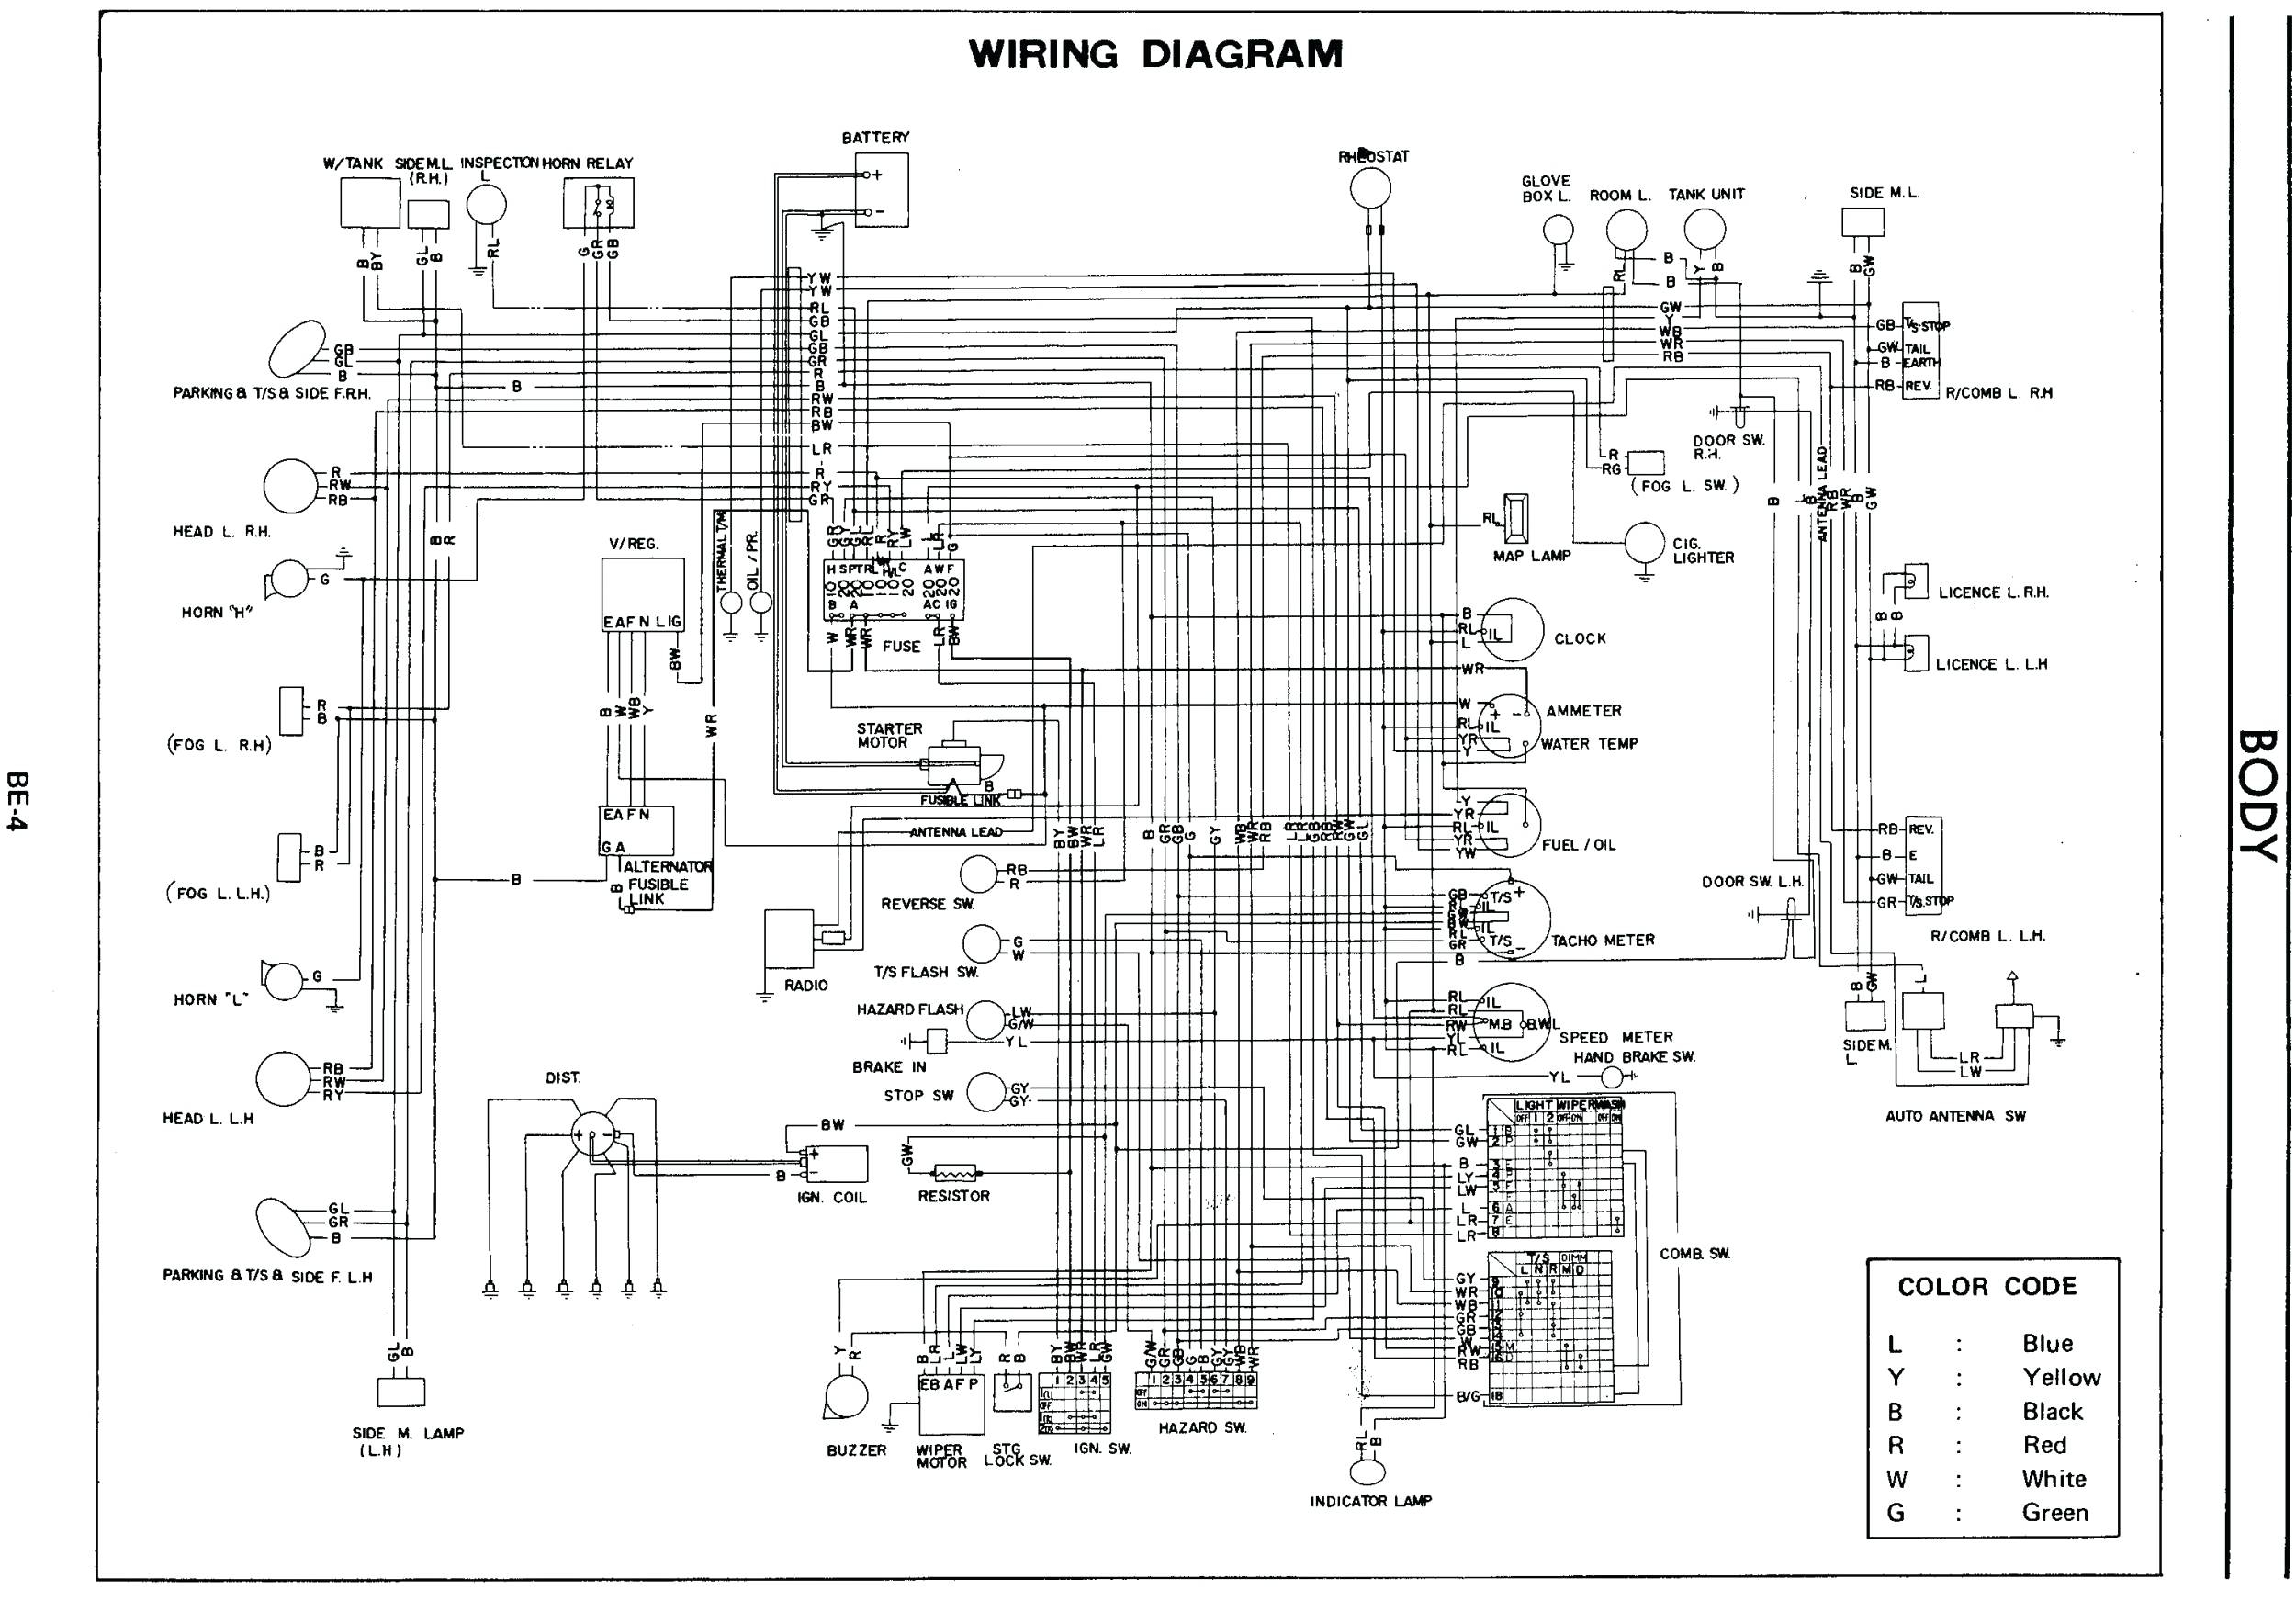 mini cooper wiring harness routing mini cooper lights wiring diagram | wiring diagram mini cooper wiring diagram 2009 #6